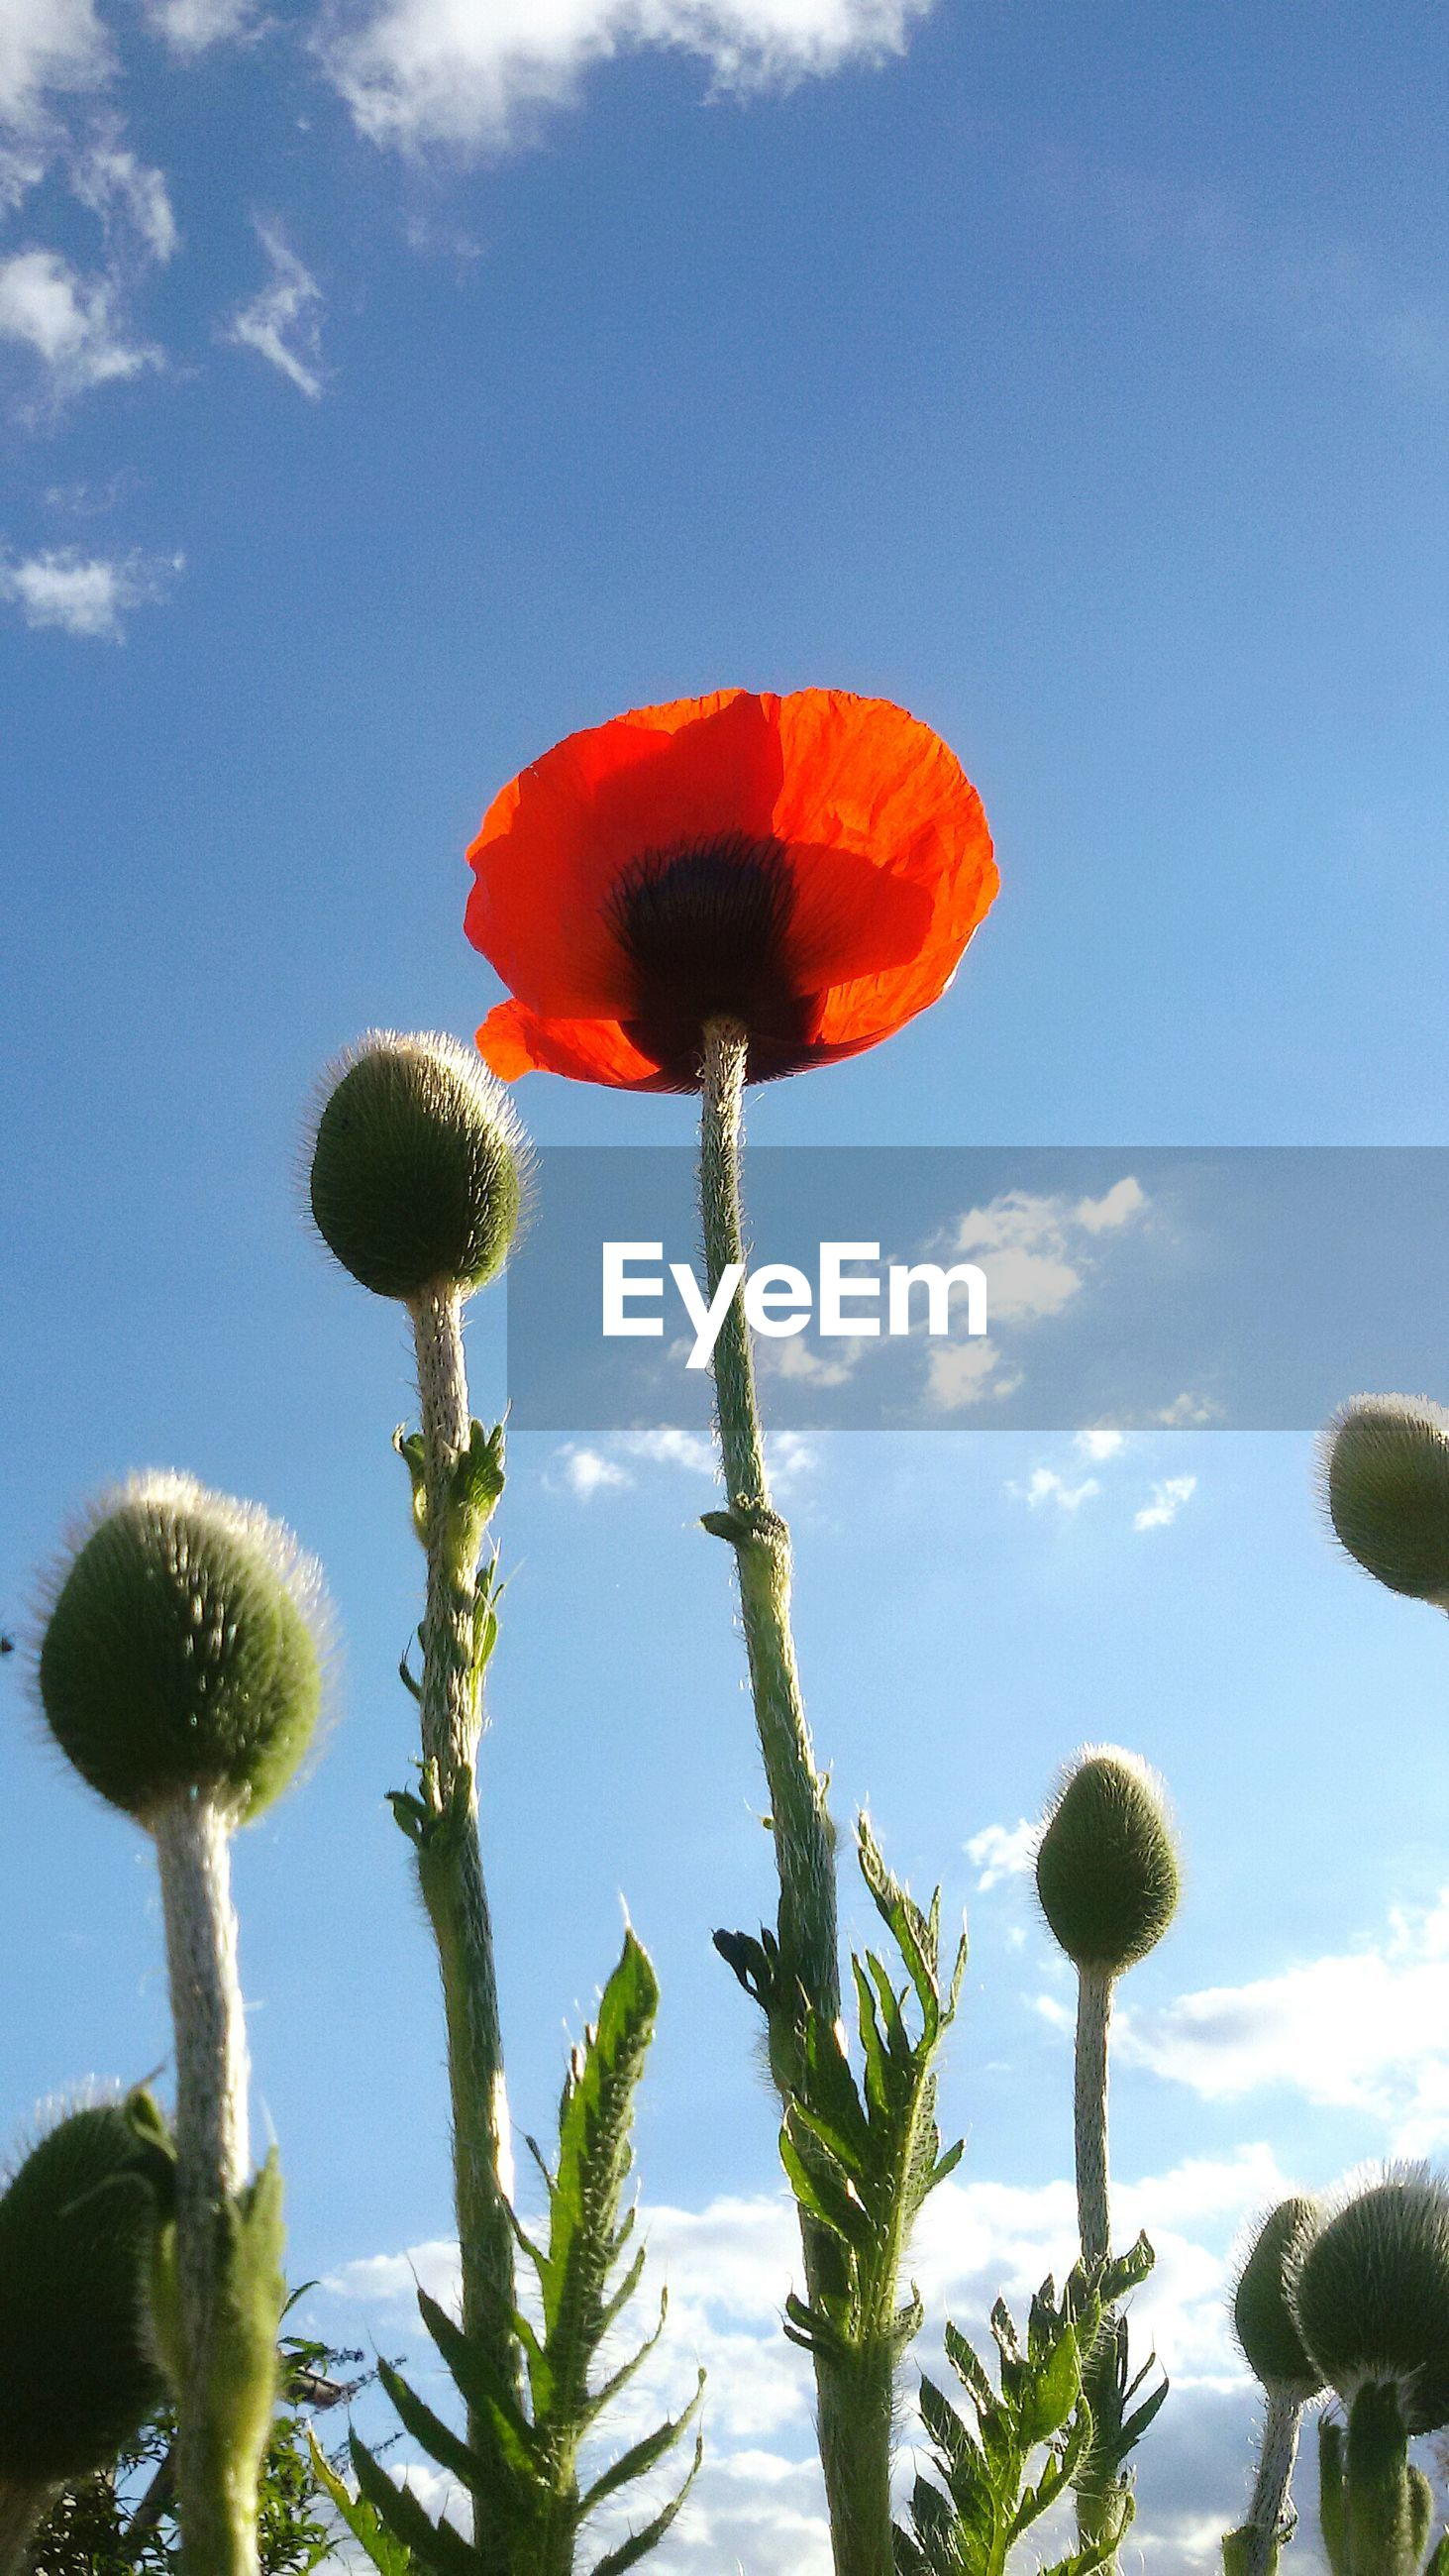 flower, growth, freshness, fragility, flower head, beauty in nature, plant, stem, petal, nature, sky, blooming, low angle view, poppy, bud, red, single flower, close-up, in bloom, botany